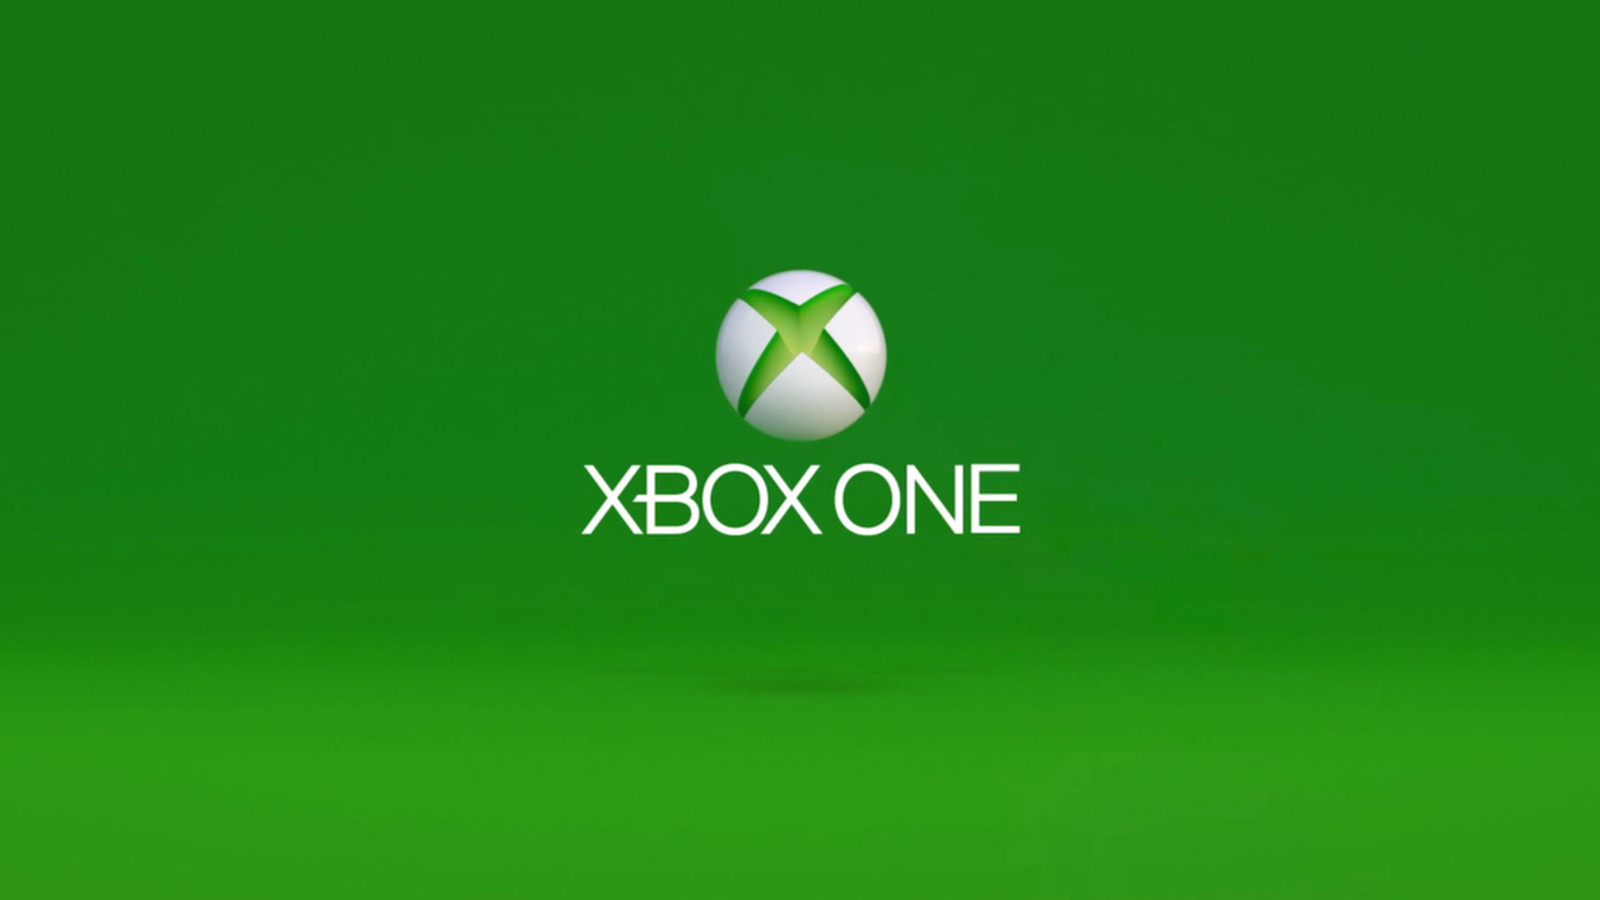 3d Clock Live Wallpaper Xbox One Will Support 4k Output Resolution And 3d Polygon